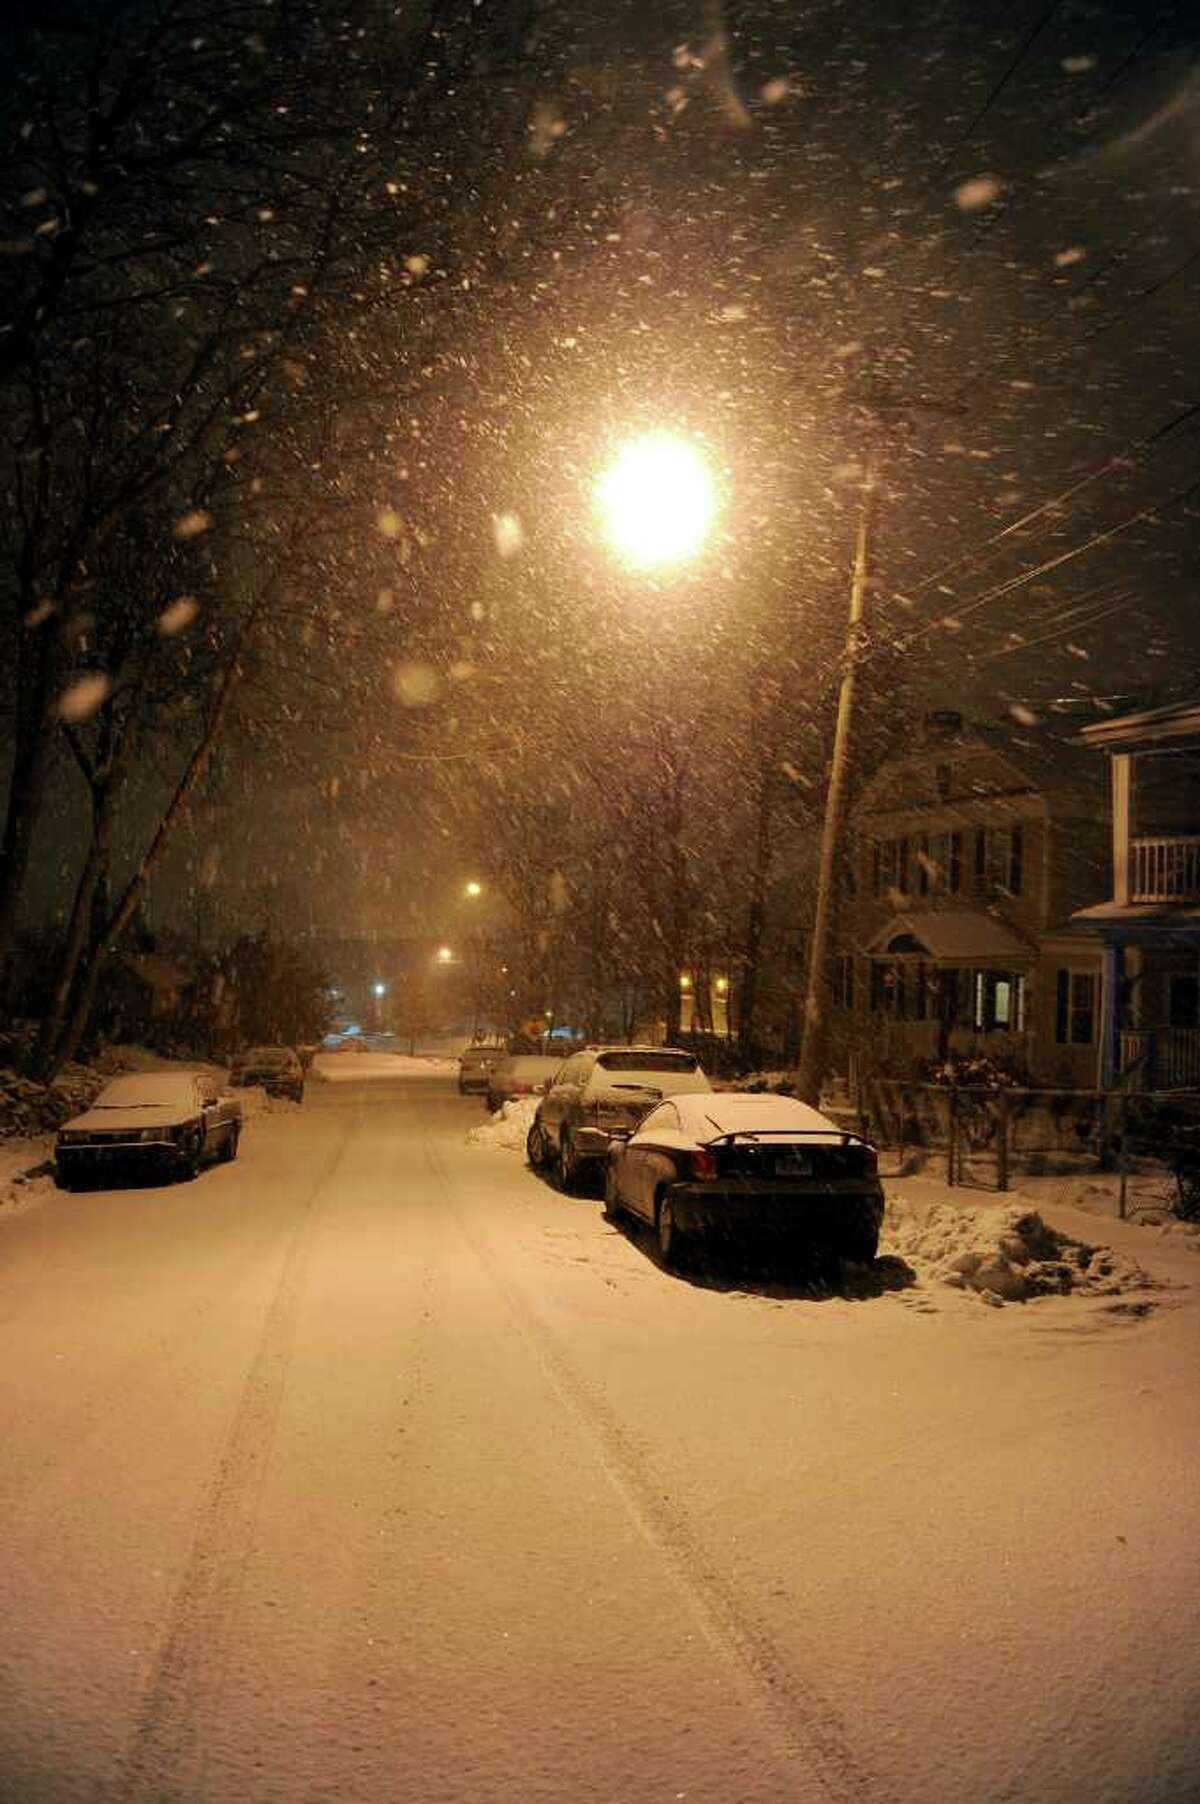 Snow falls as the third big snowstorm of the year begins to hit southern Connecticut on Tuesday, January 11, 2011.